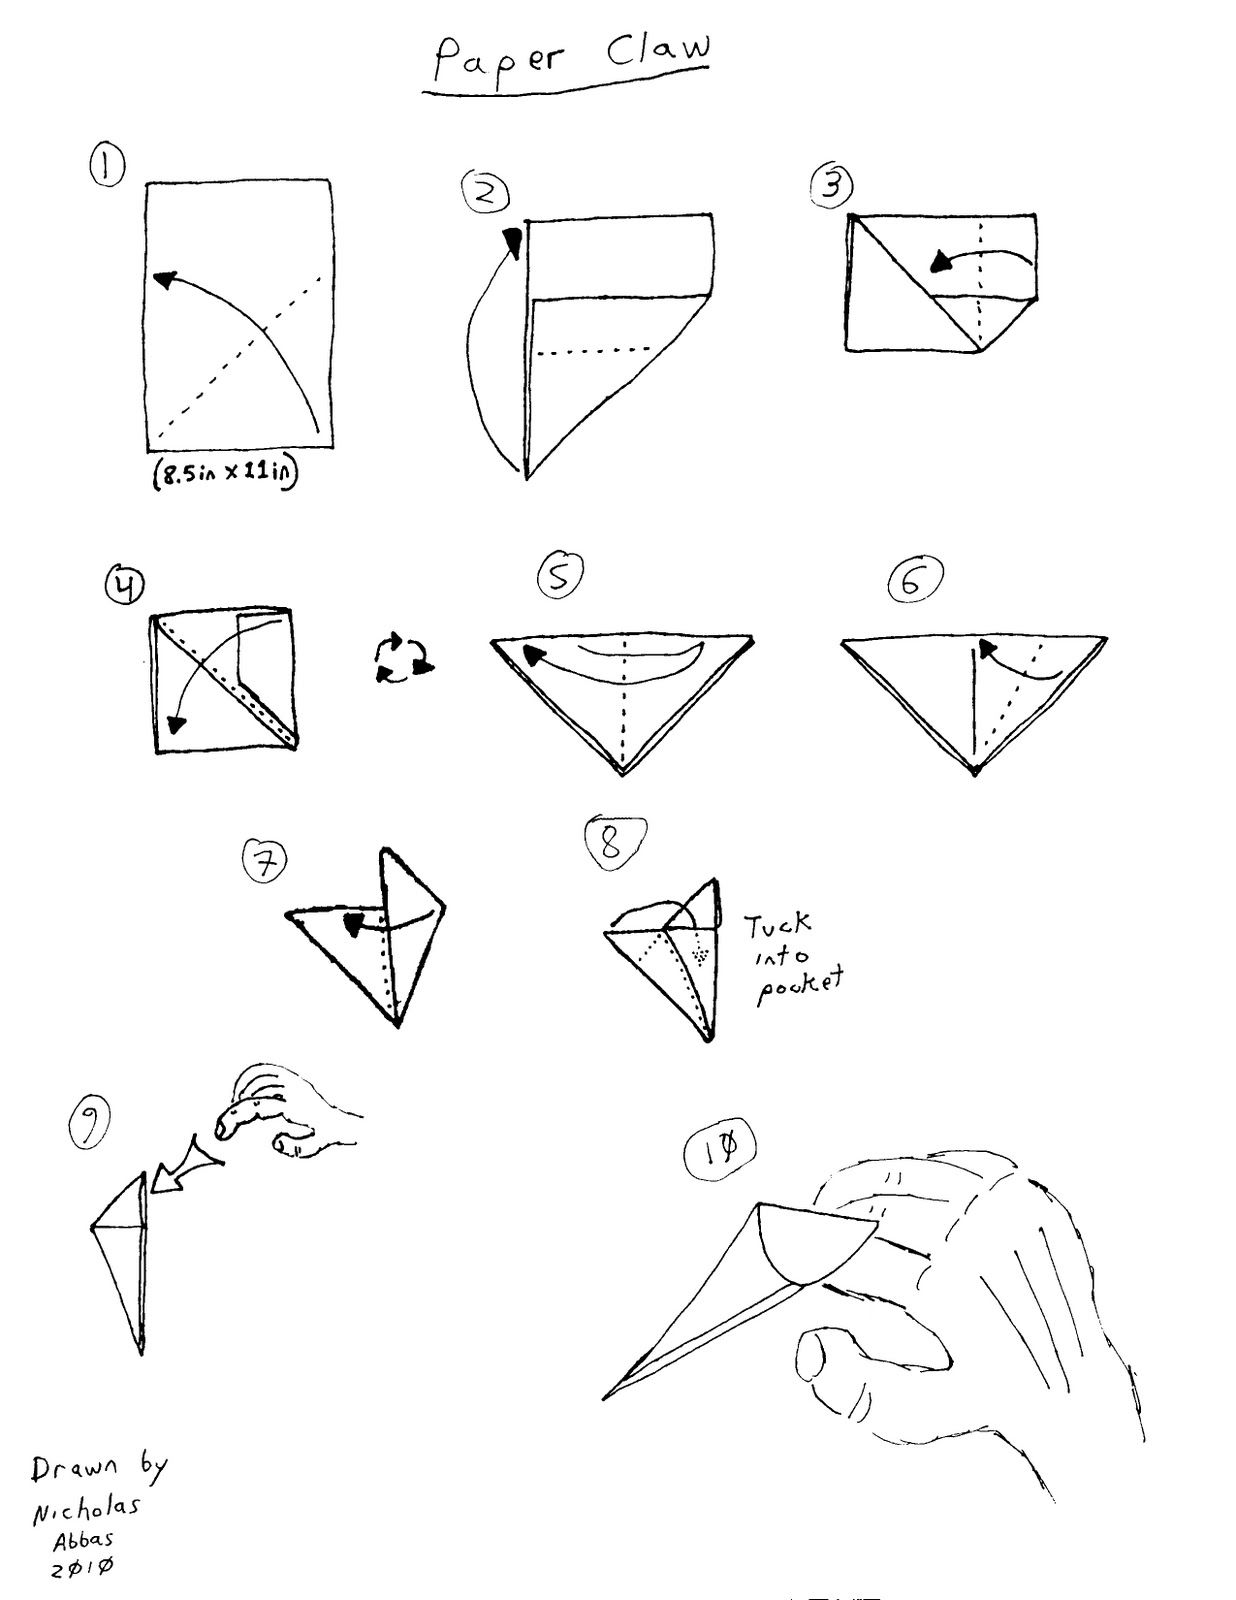 Make One For Each Finger Paper Claw Roughly Drawn